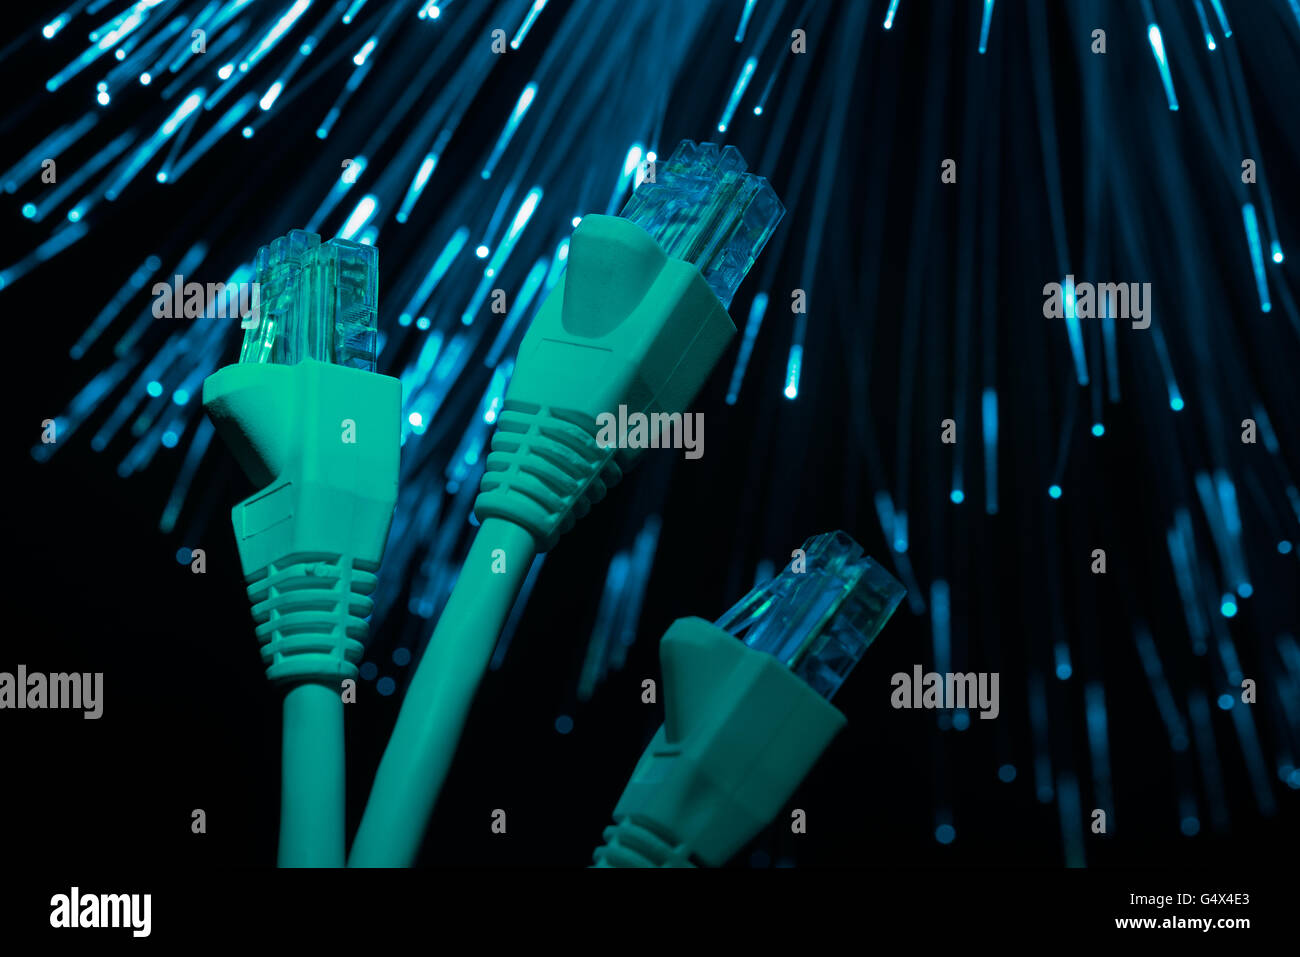 networking optical and electrical telecommunication computer connections with high bandwidth - Stock Image